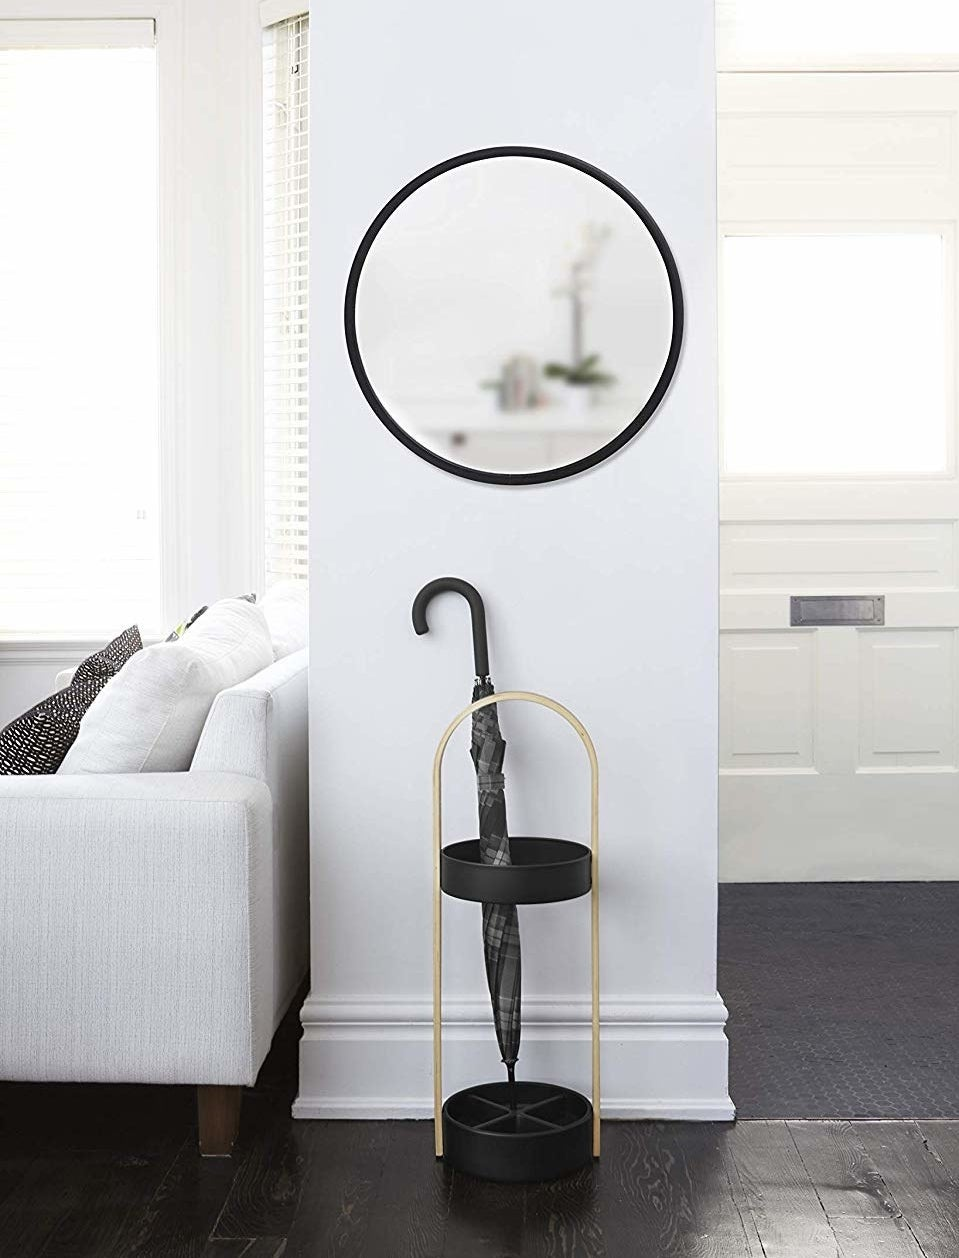 The round mirror is hung on a narrow wall above an umbrella stand